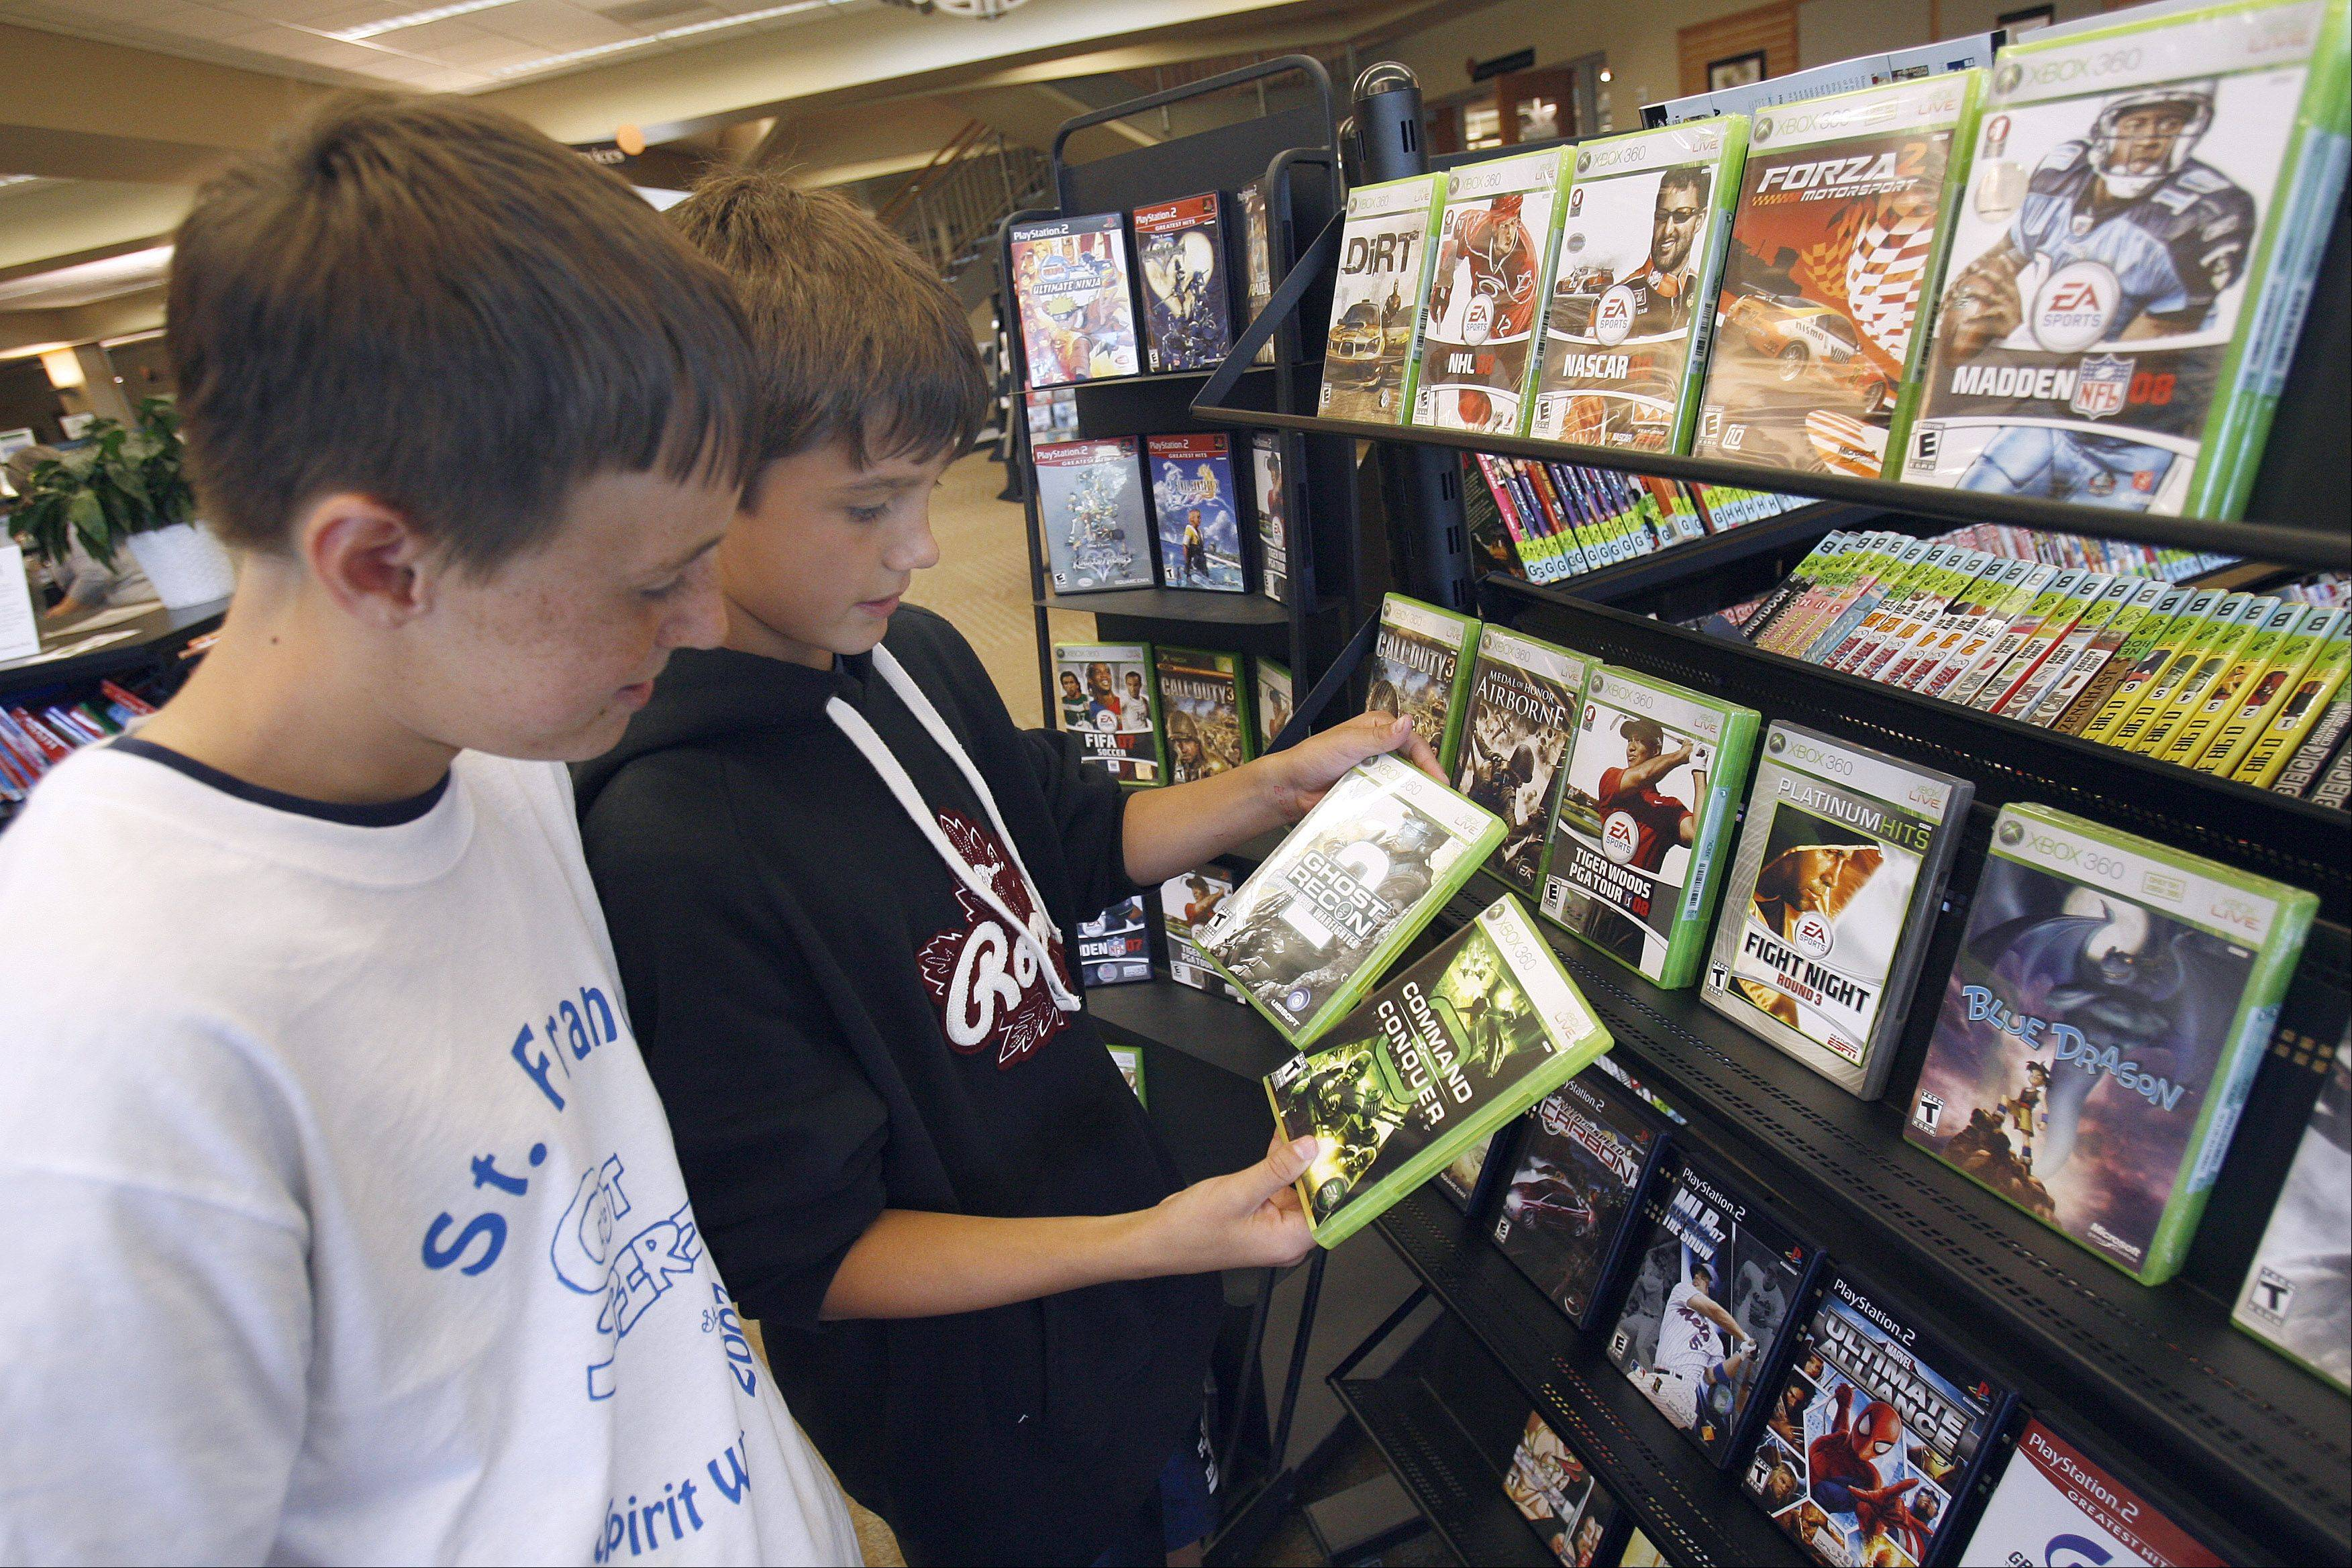 U.S. retail sales of video games, hardware and accessories declined 25 percent in May as demand for aging game consoles continued to fade and fewer new games launched compared with last year, according to market researcher NPD